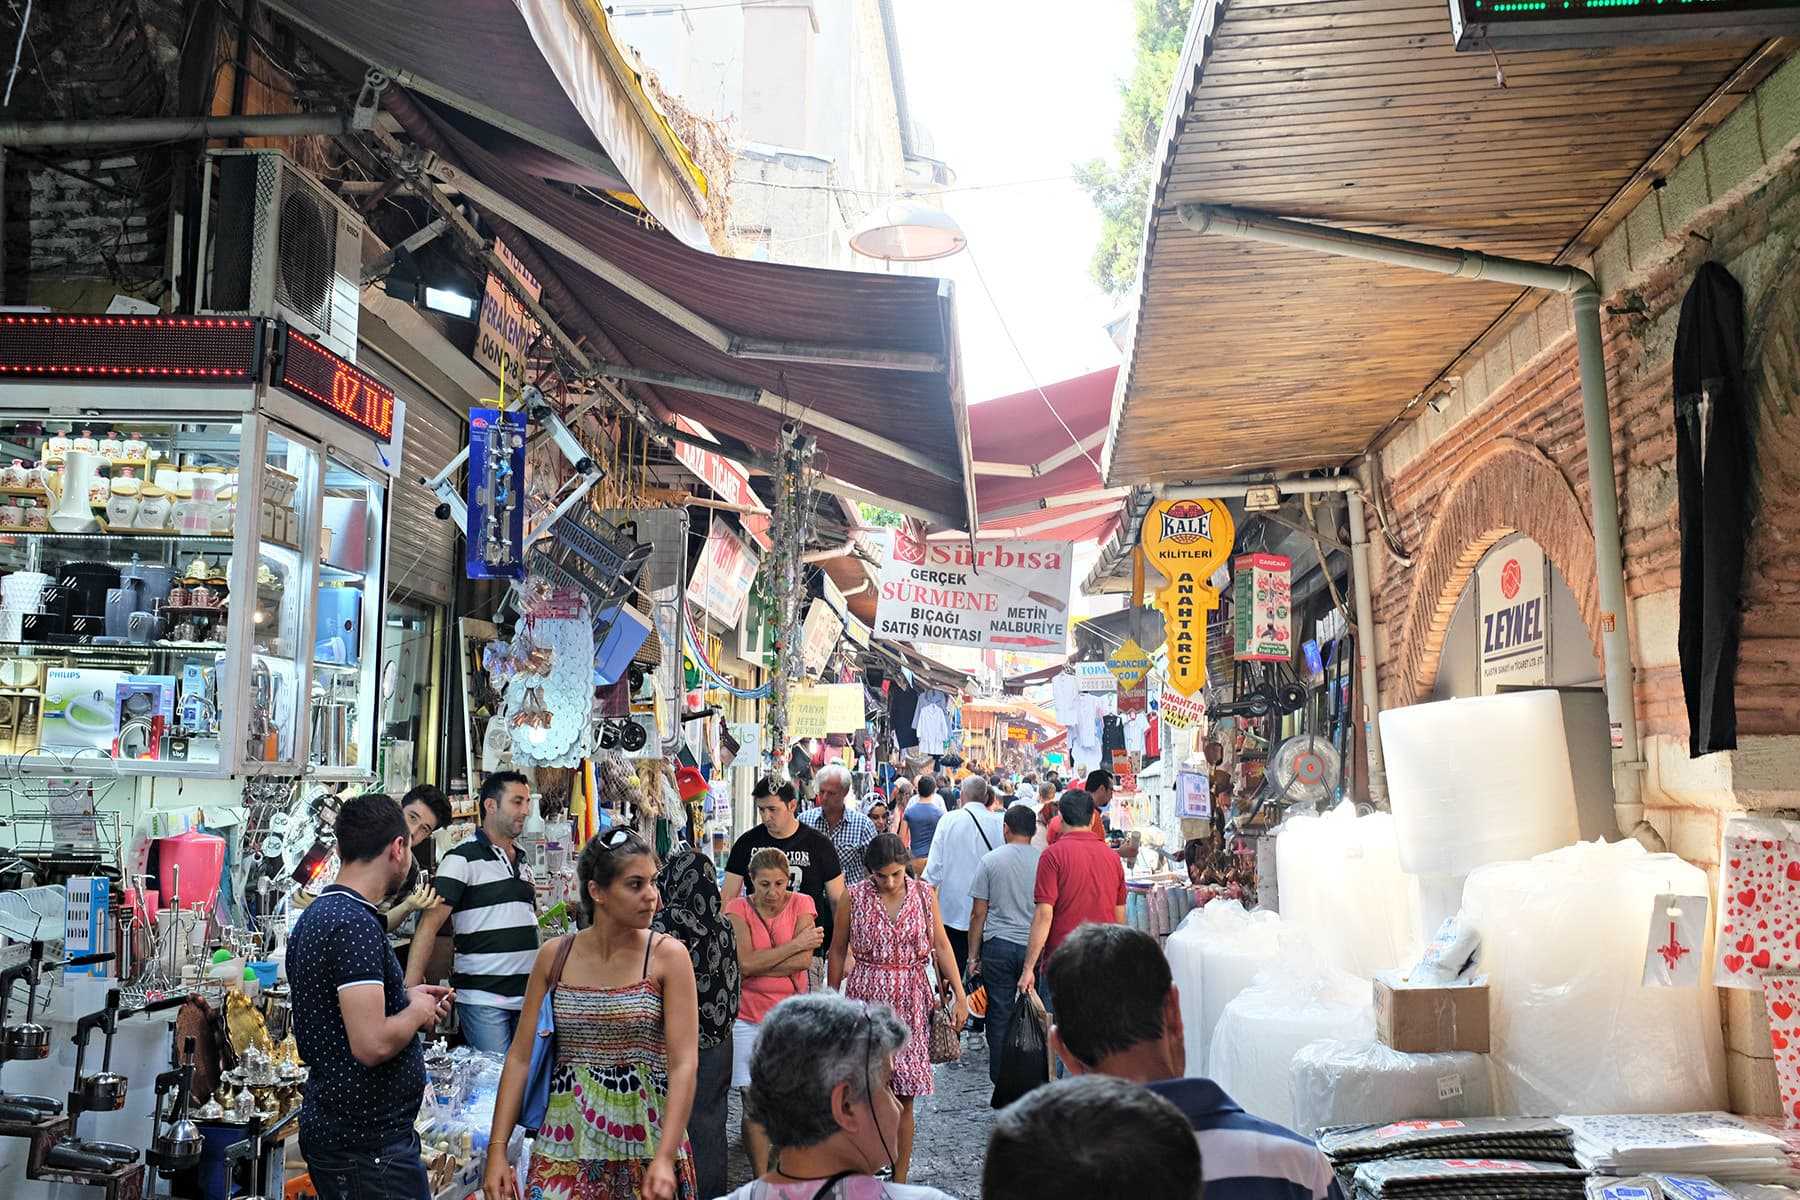 The route to Rustem Pasha is through Straw weavers Market.